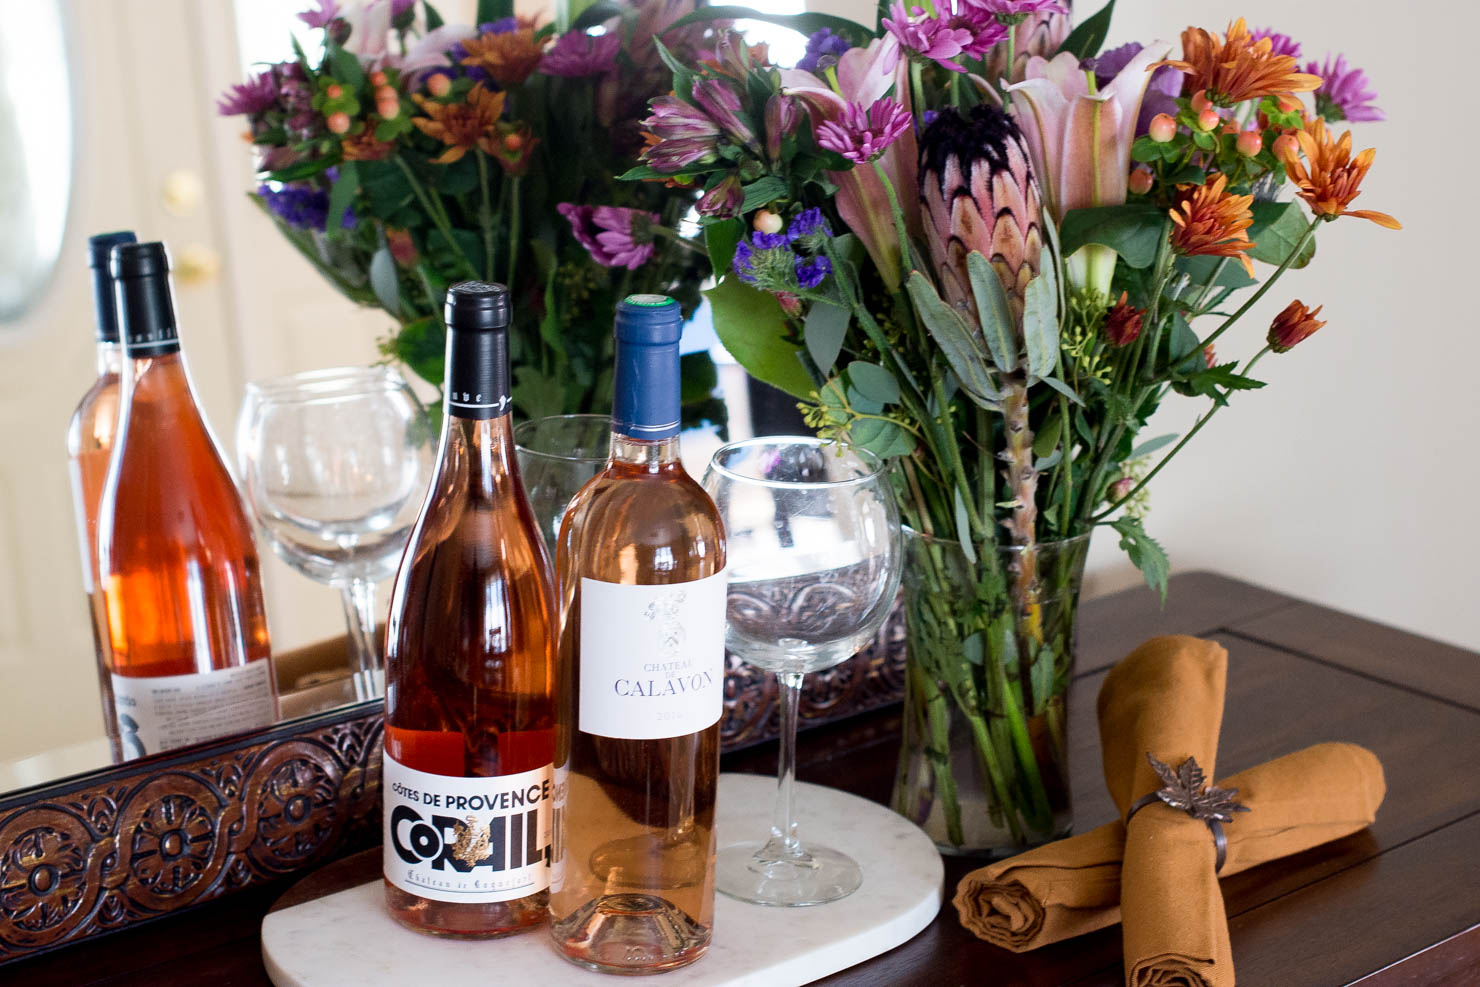 rose food pairings for fall, wines de provence, rose all year